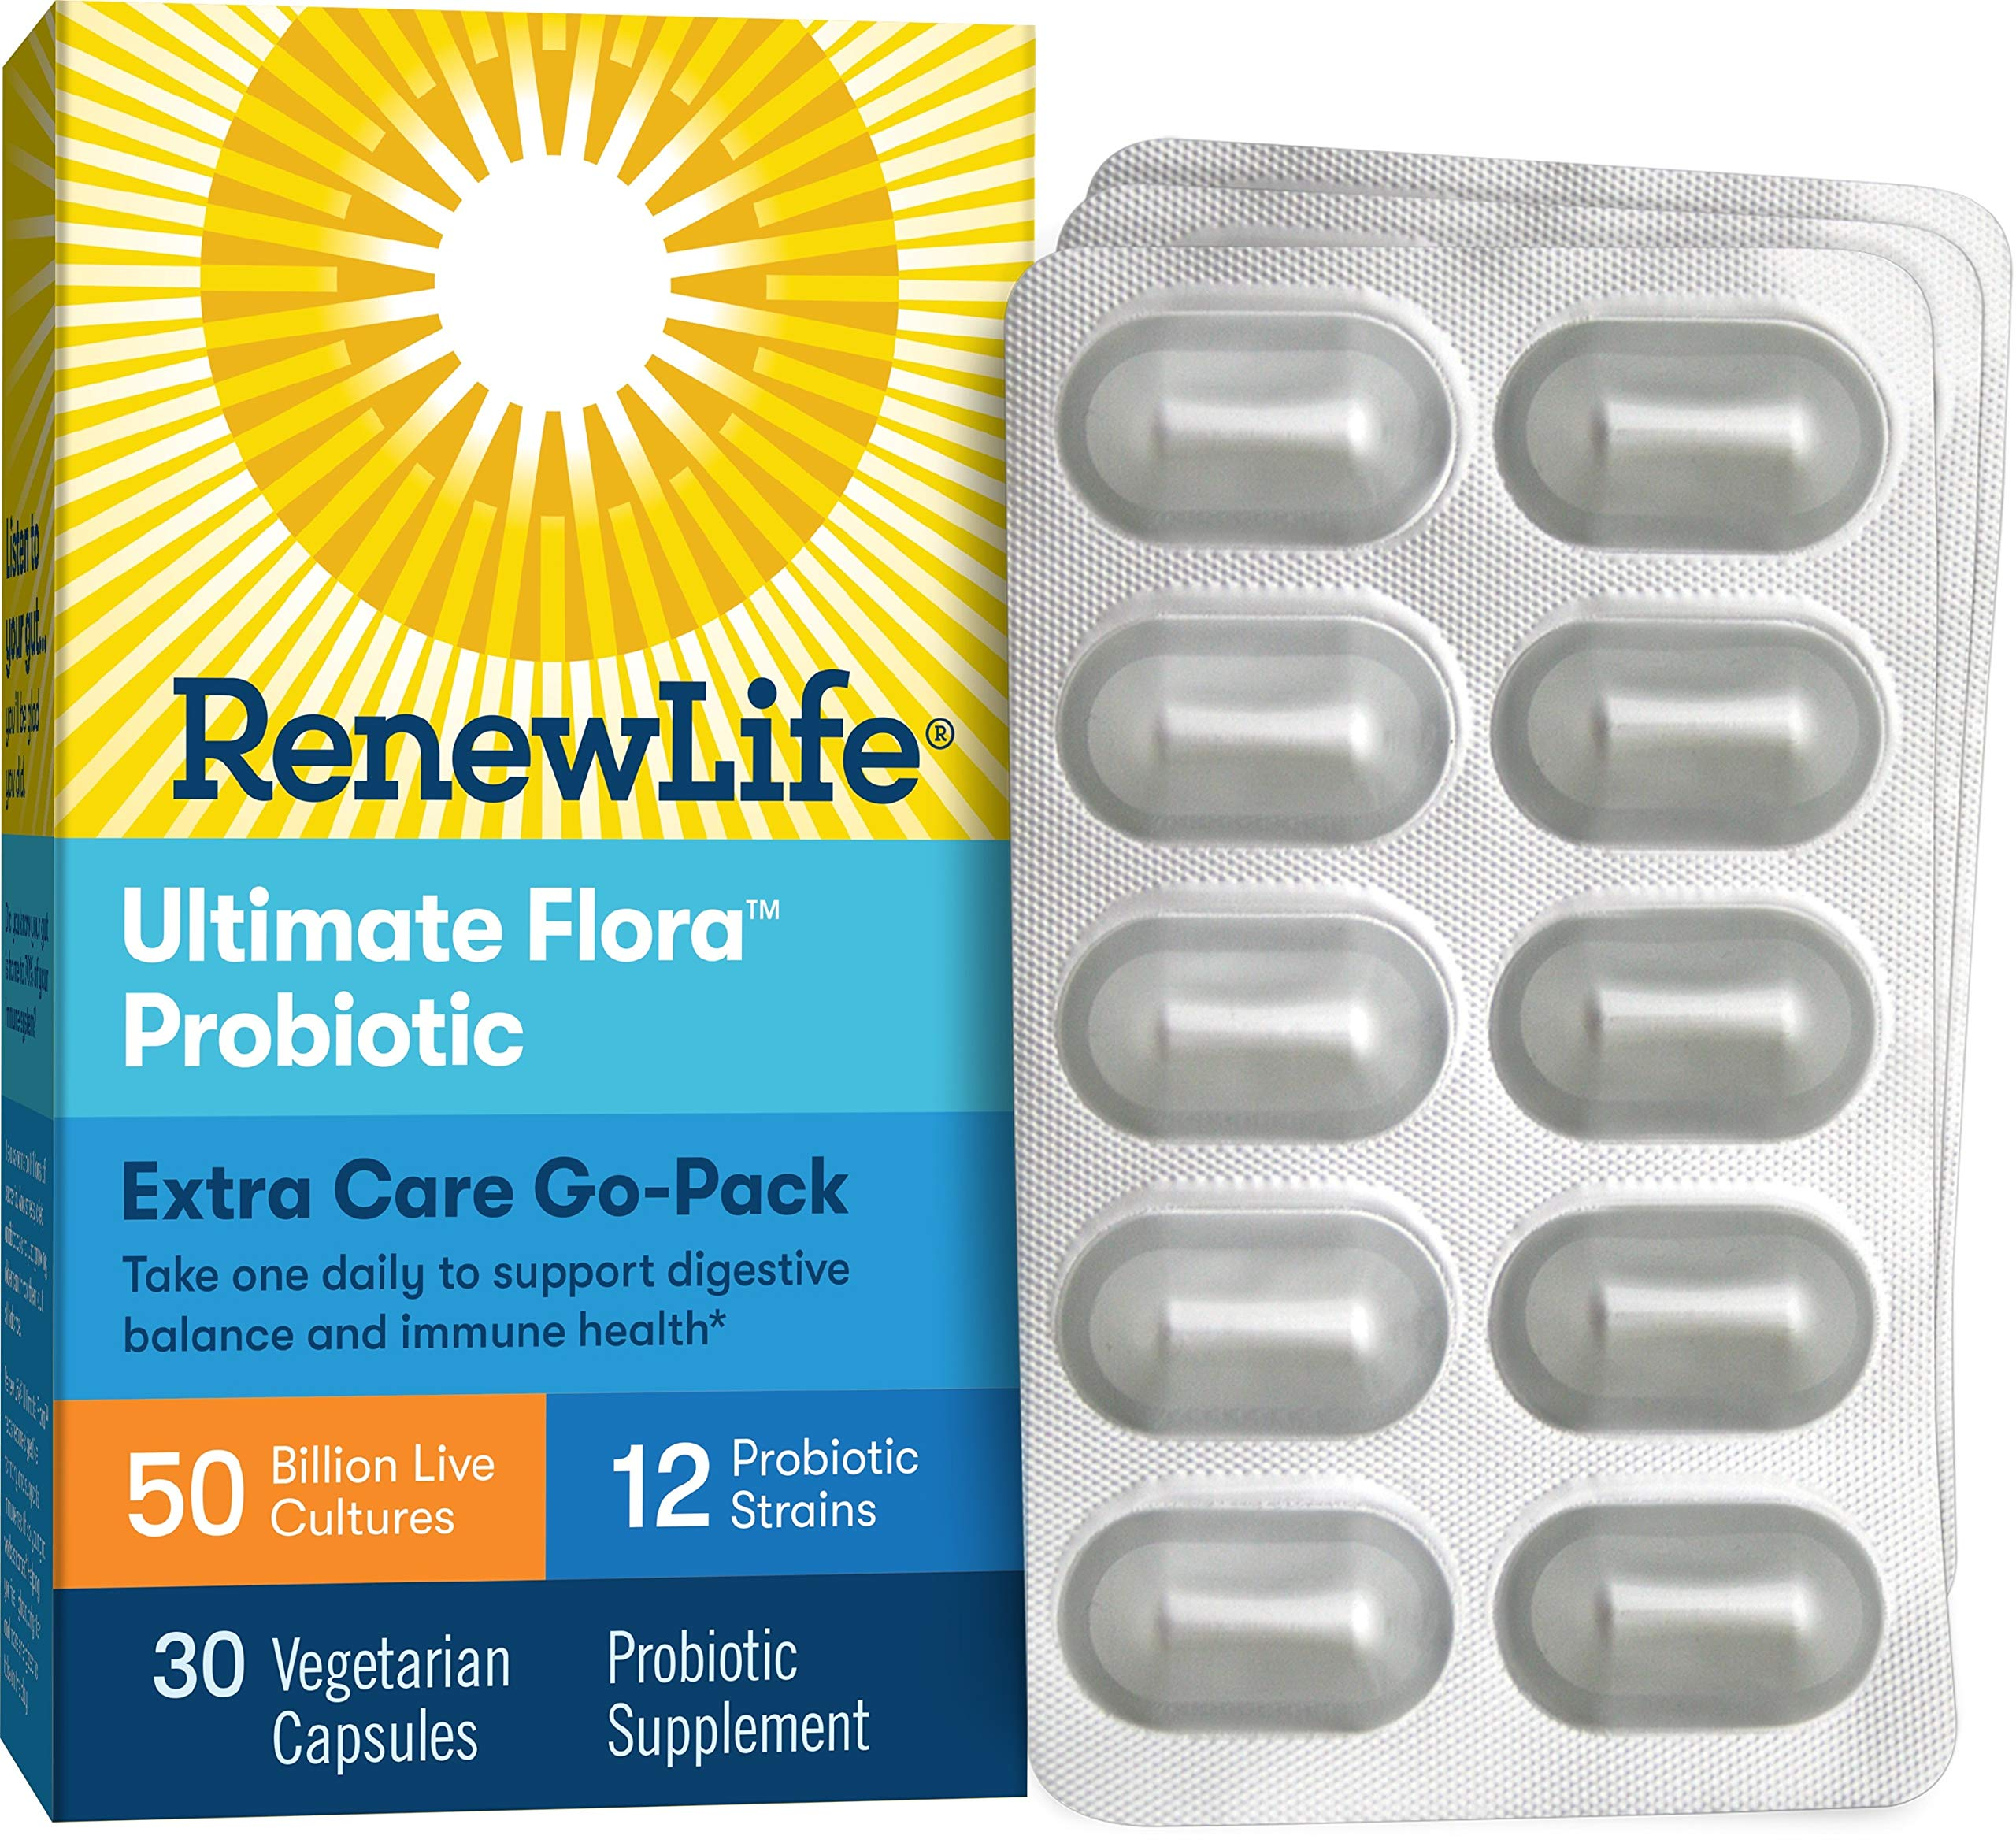 Renew Life Adult Probiotic - Ultimate Flora Extra Care Go-Pack Probiotic Supplement - Gluten, Dairy & Soy Free - 50 Billion CFU - 30 Vegetarian Capsules by Renew Life